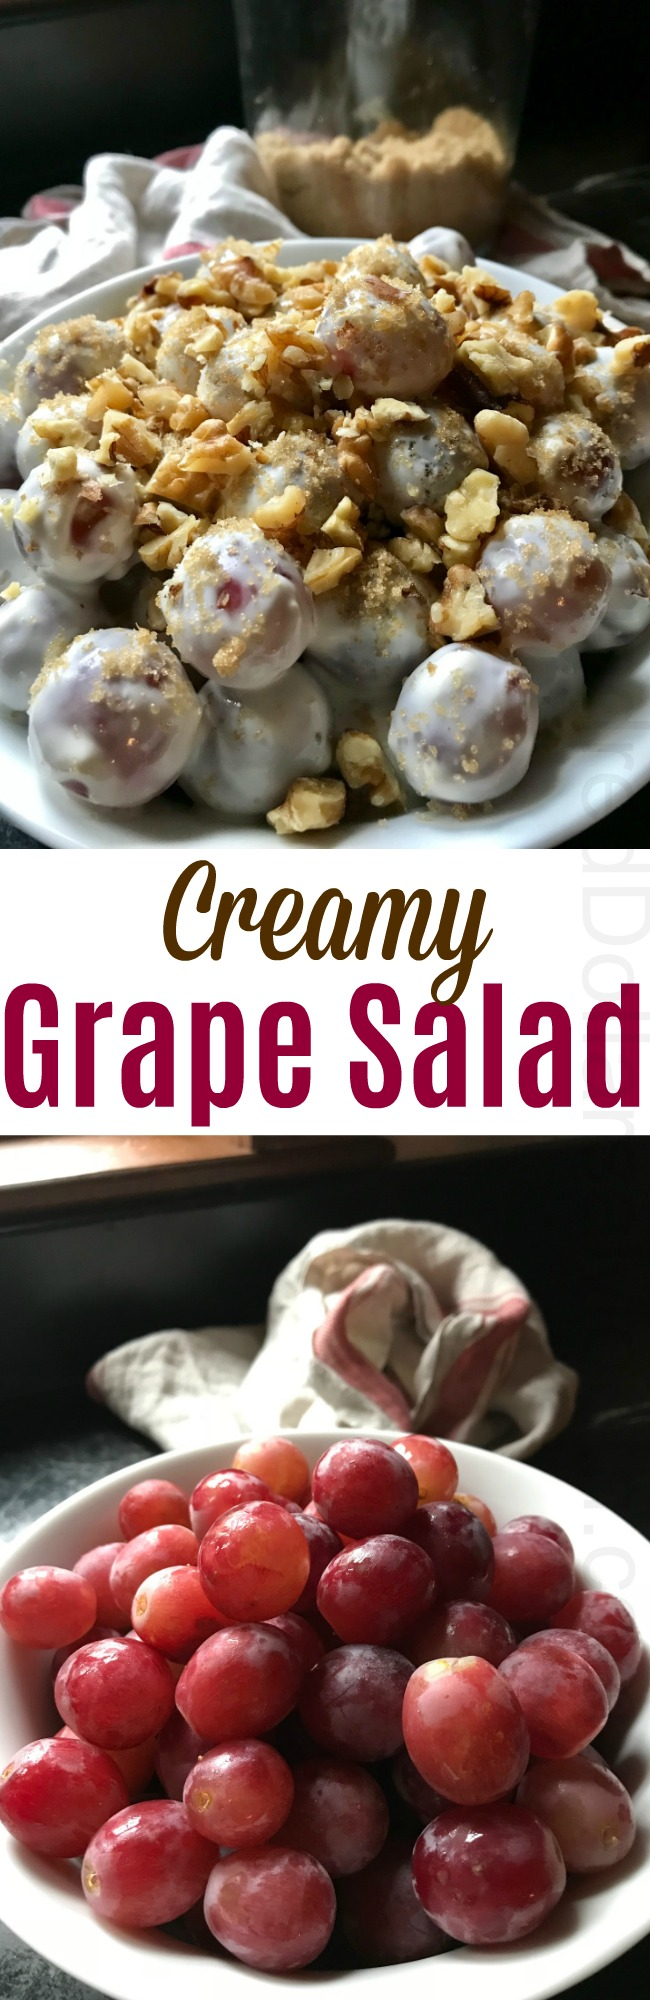 Carole's Creamy Grape Salad